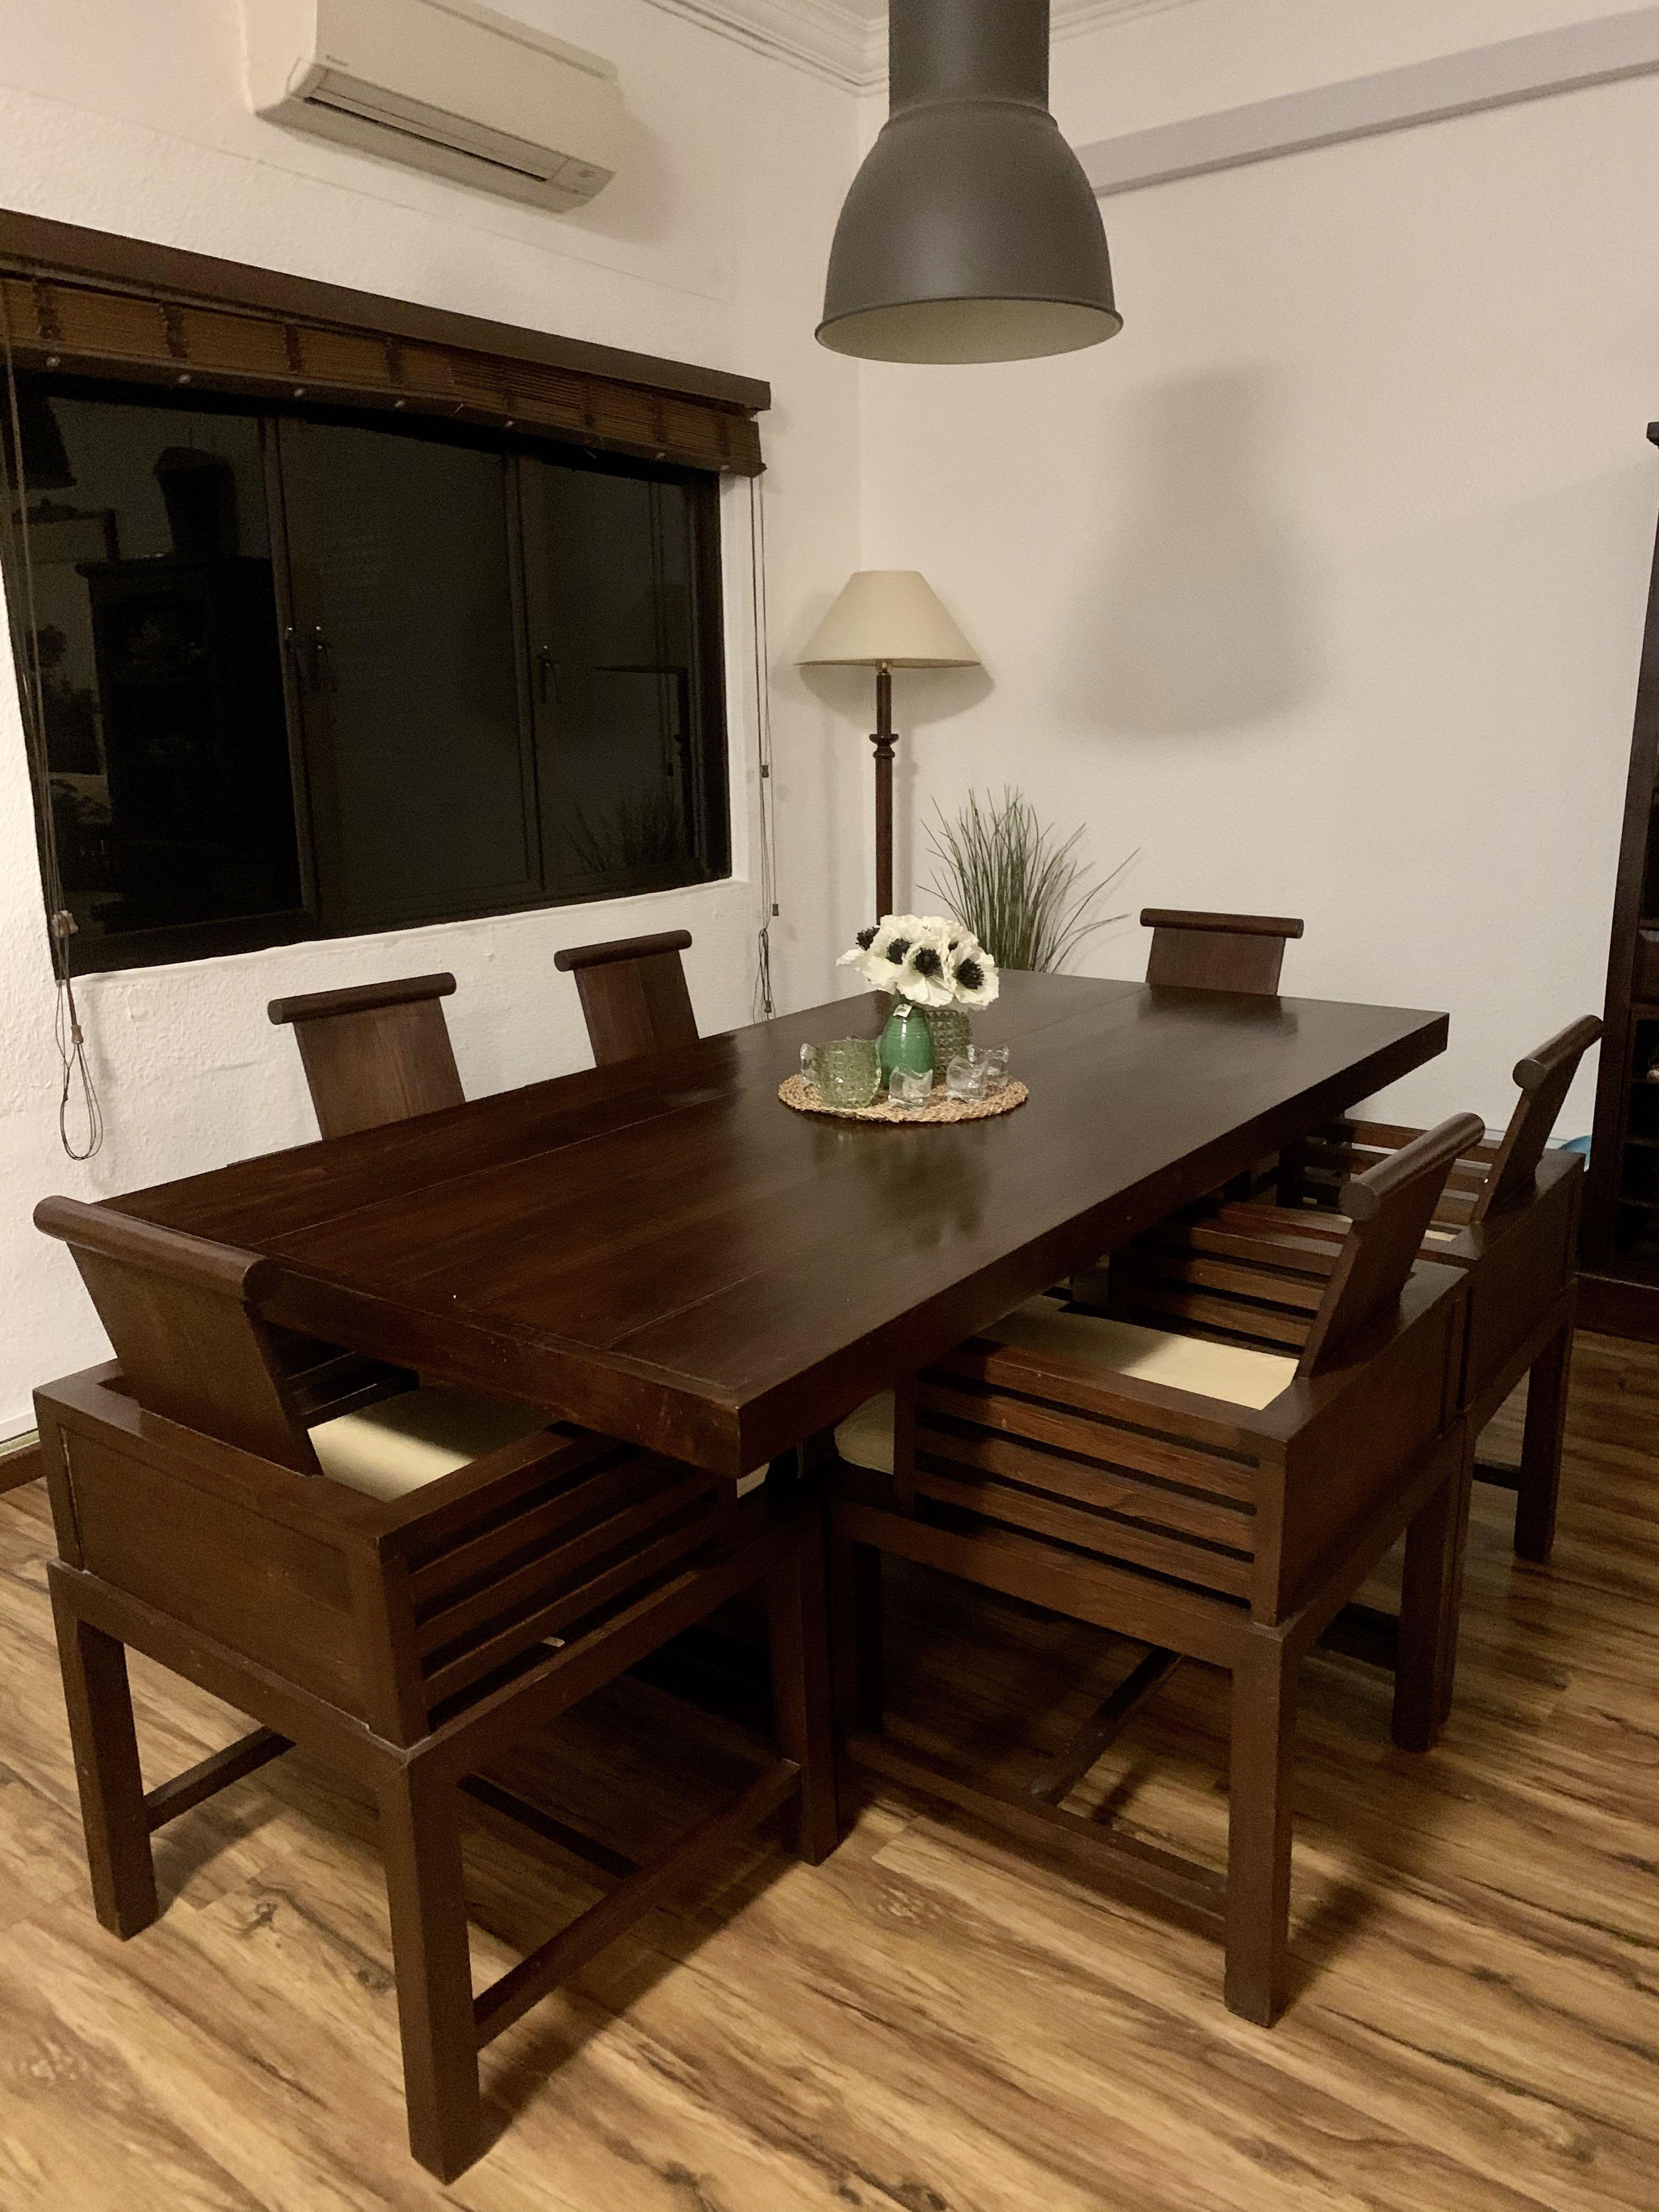 Rare High Quality Full Teak Dining Table Set Furniture Tables Chairs On Carousell